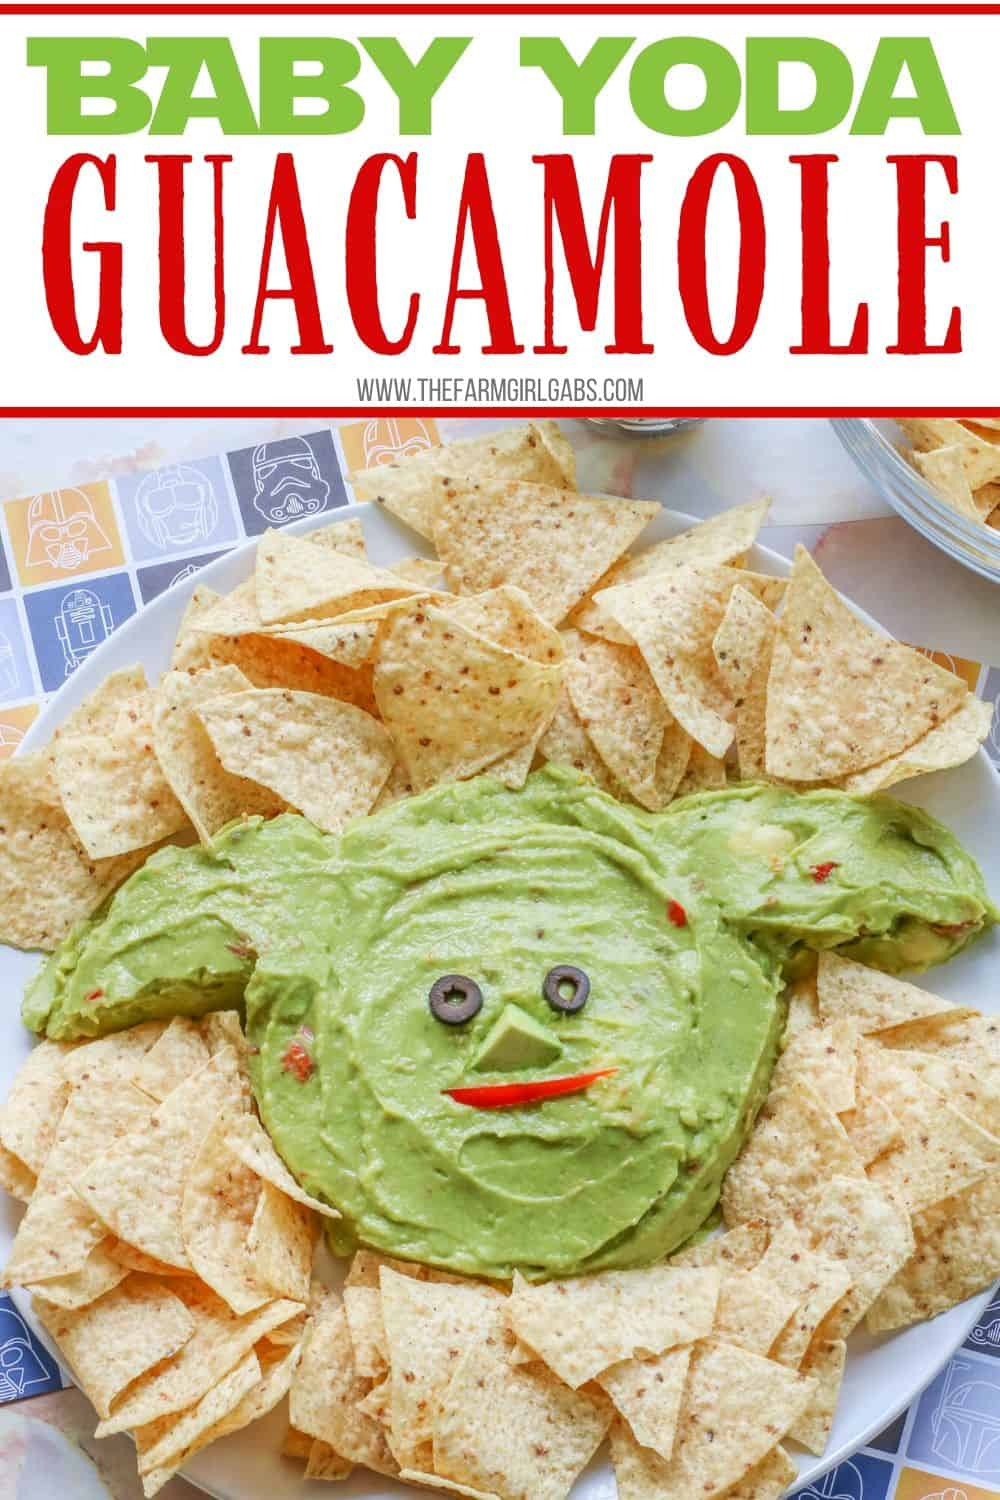 Whether it's Cinco de Mayo or Star Wars day, this Baby Yoda Guacamole Platter is the fun entertaining recipe that Star Wars fans will think is out of this world. Everyone loves an easy guacamole recipe and this one is perfect for the Baby Yoda fans in your life.